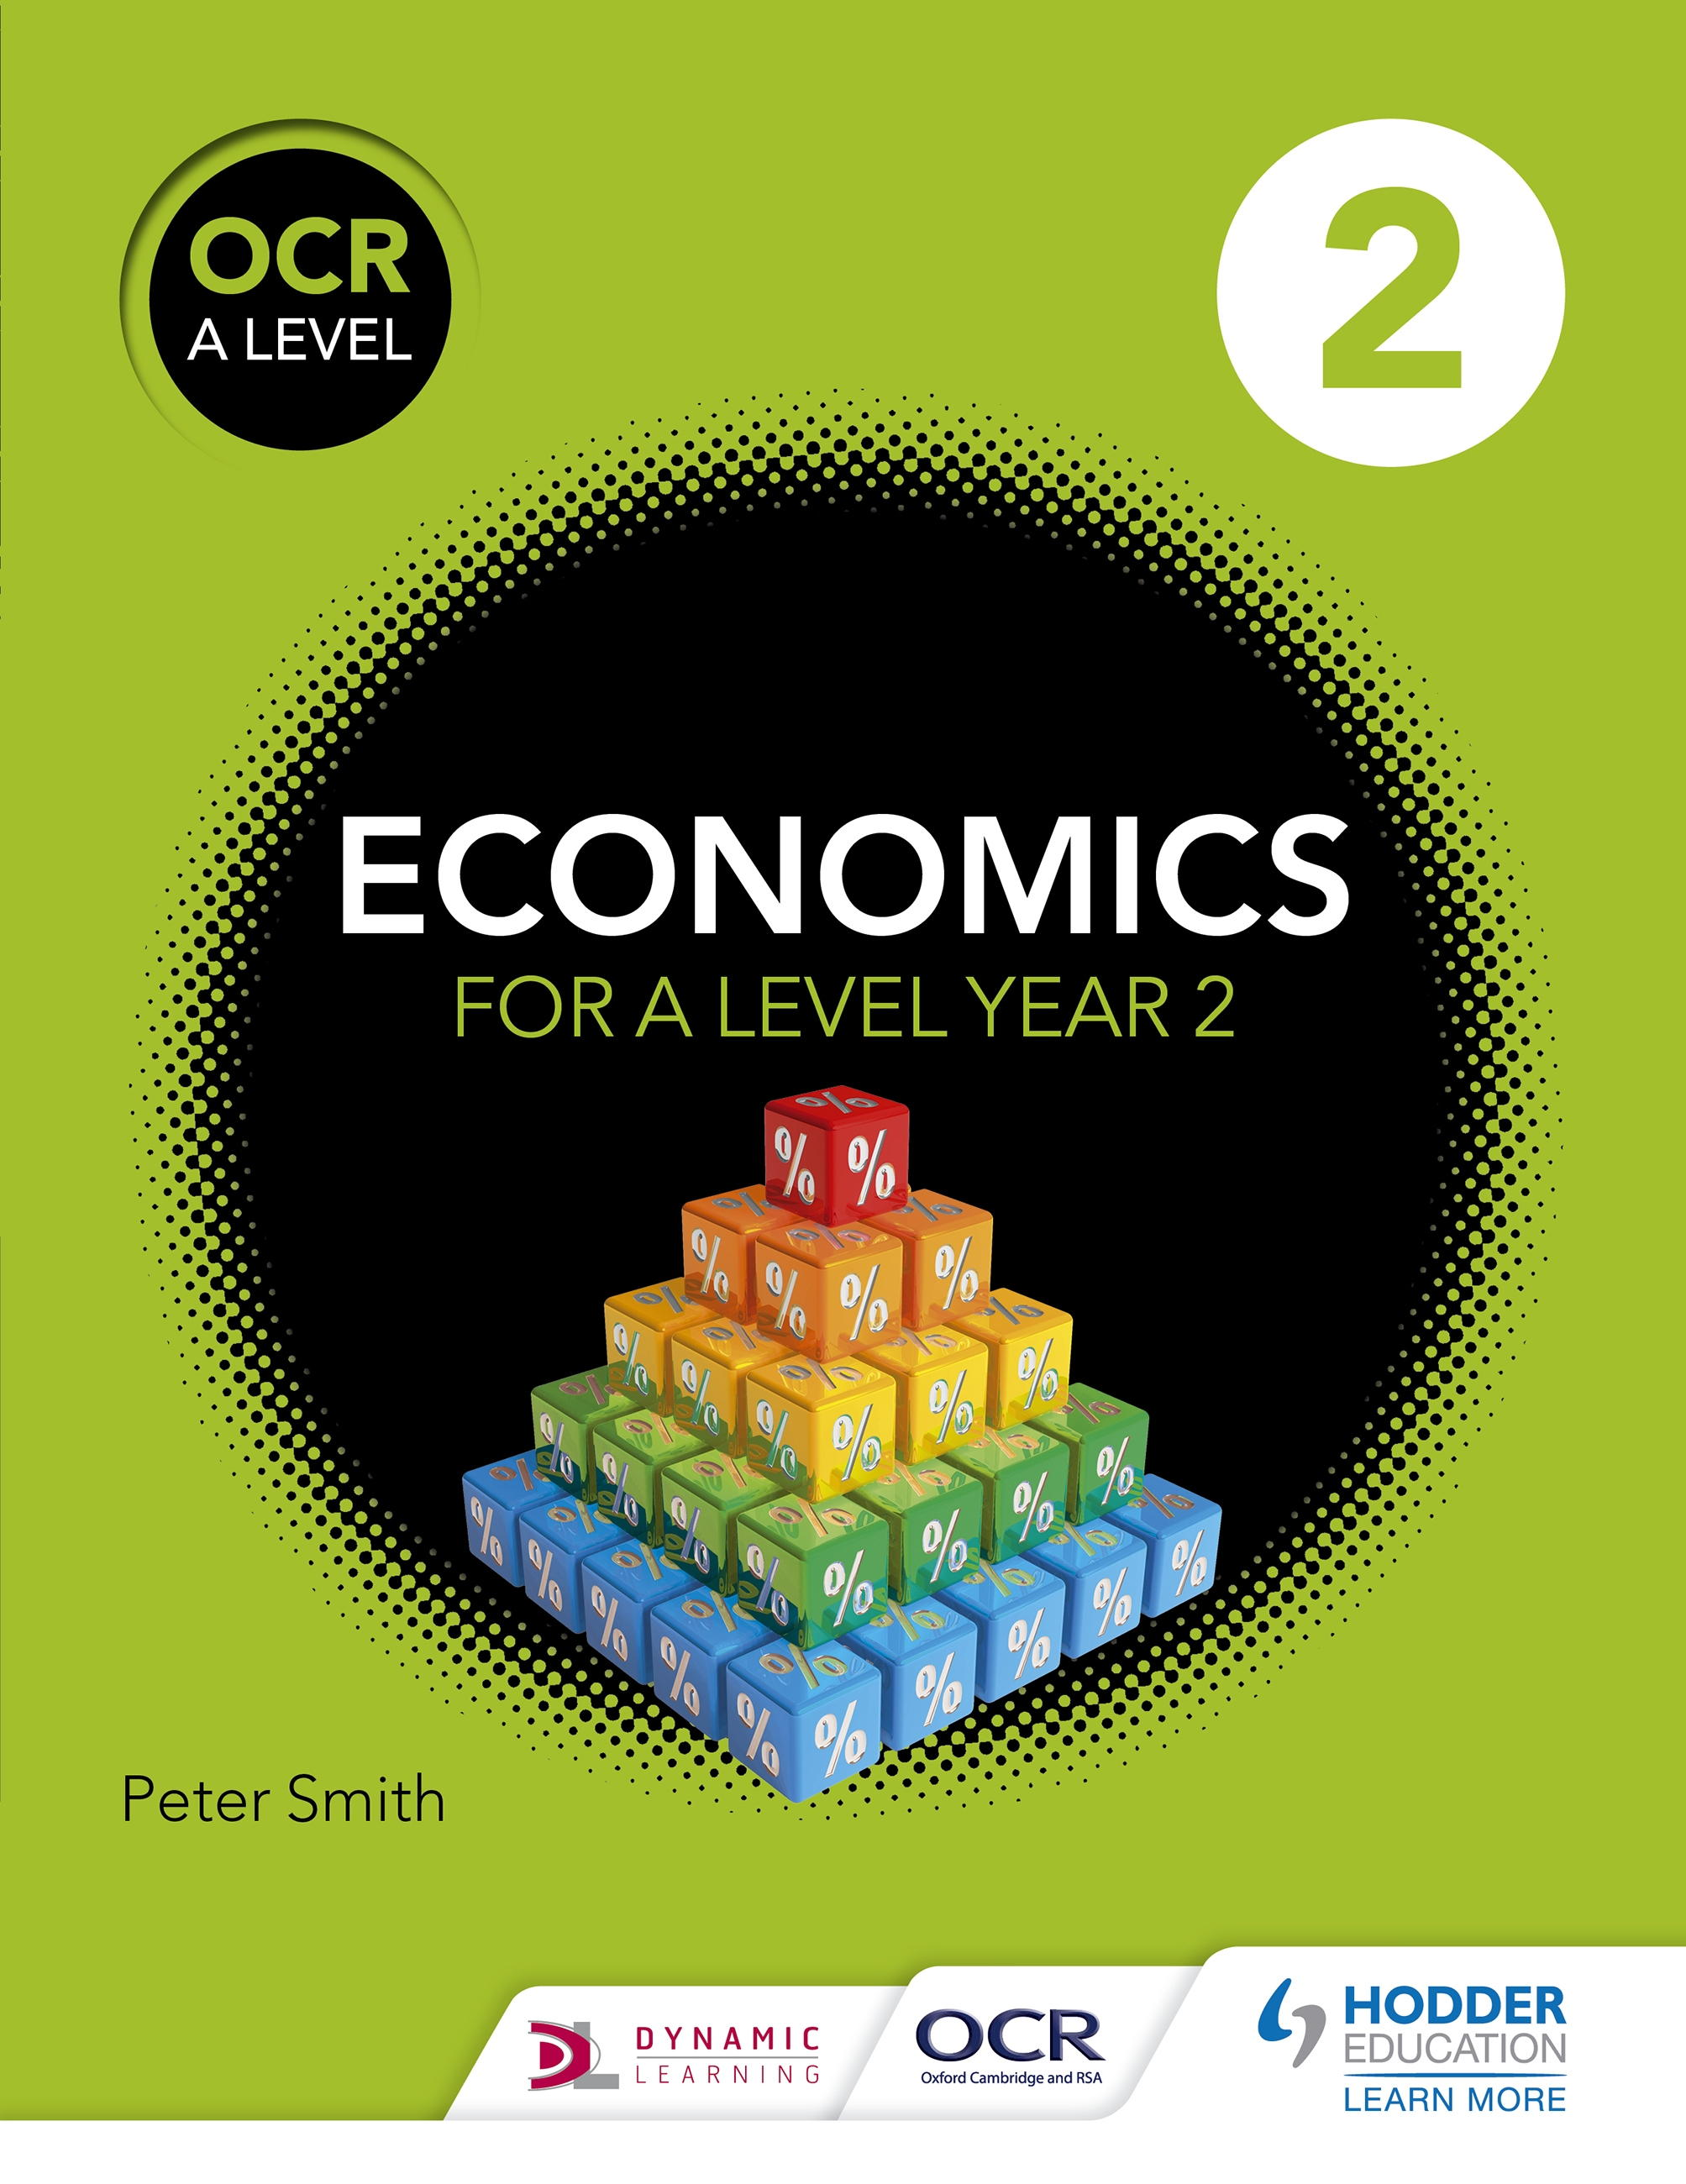 Download Ebook OCR A Level Economics Book 2 by Peter Smith Pdf